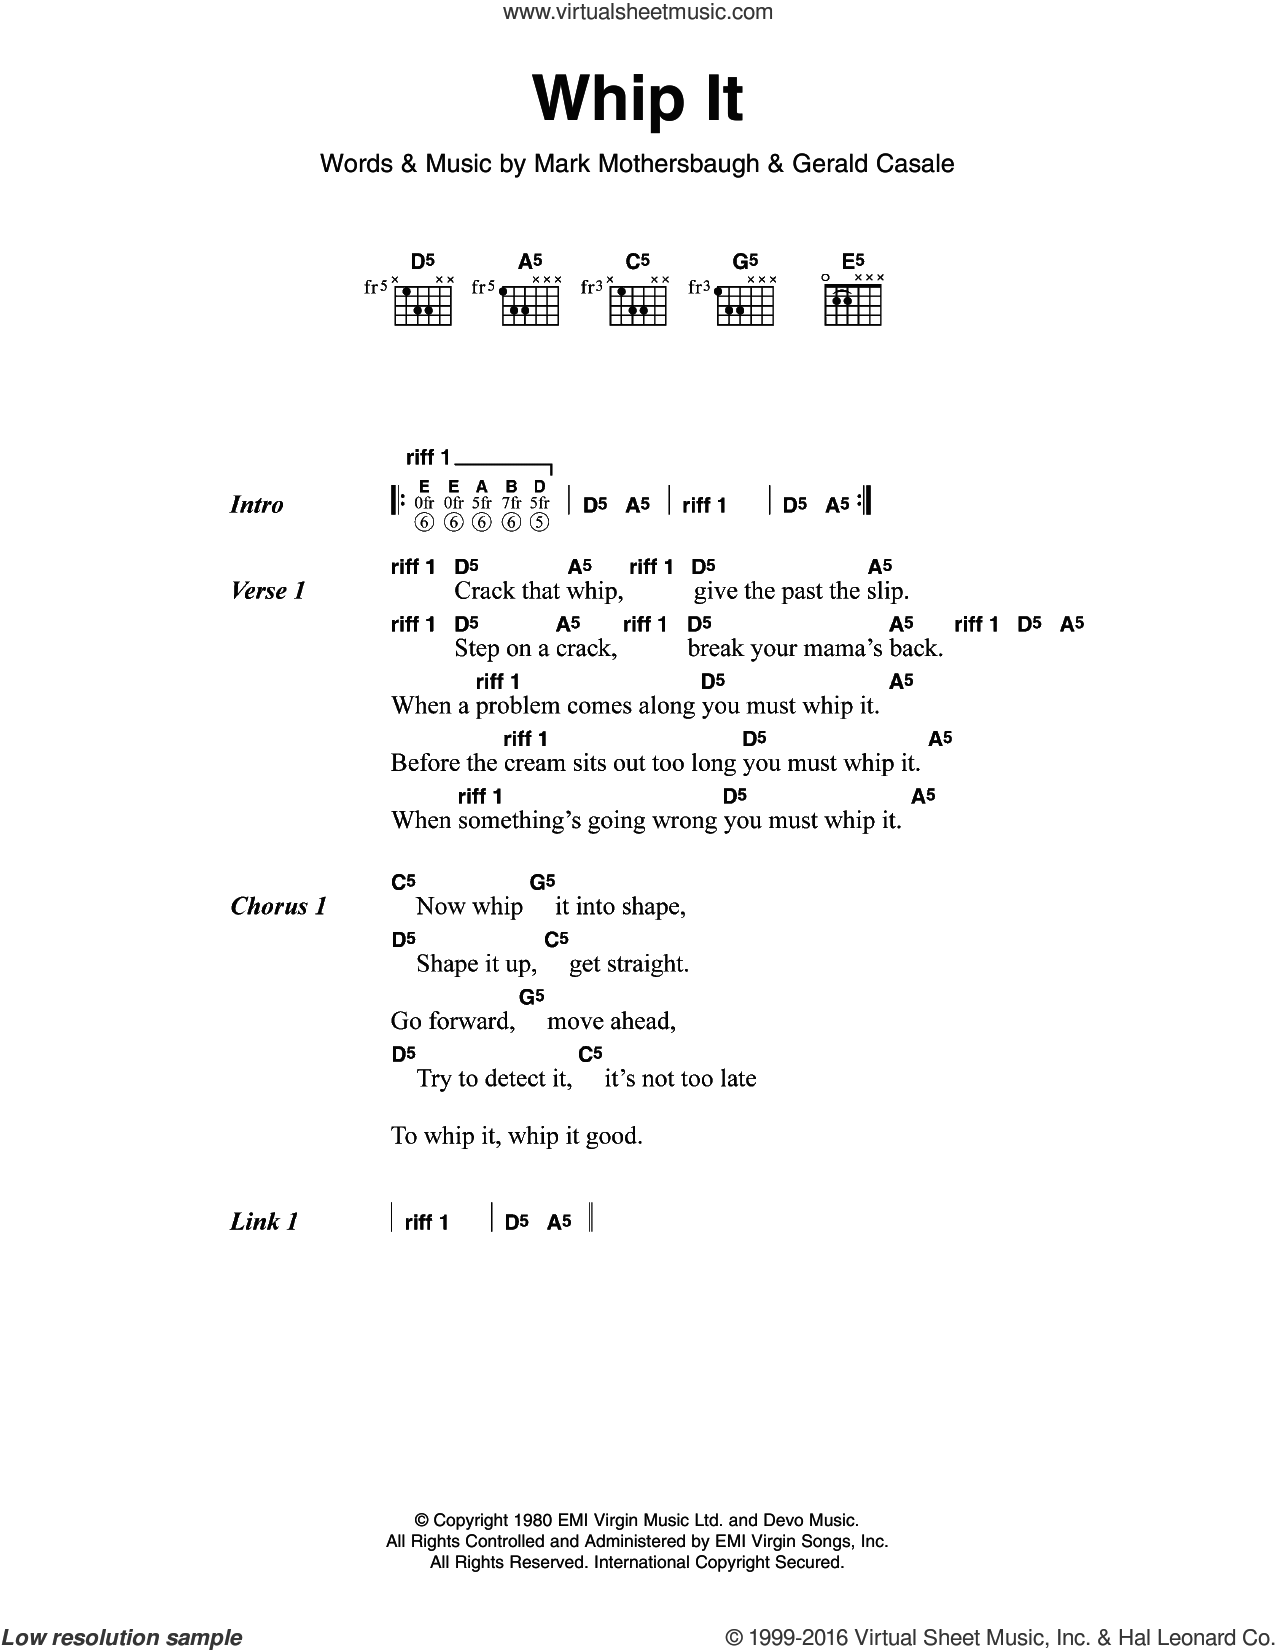 Whip It sheet music for guitar (chords) by Mark Mothersbaugh